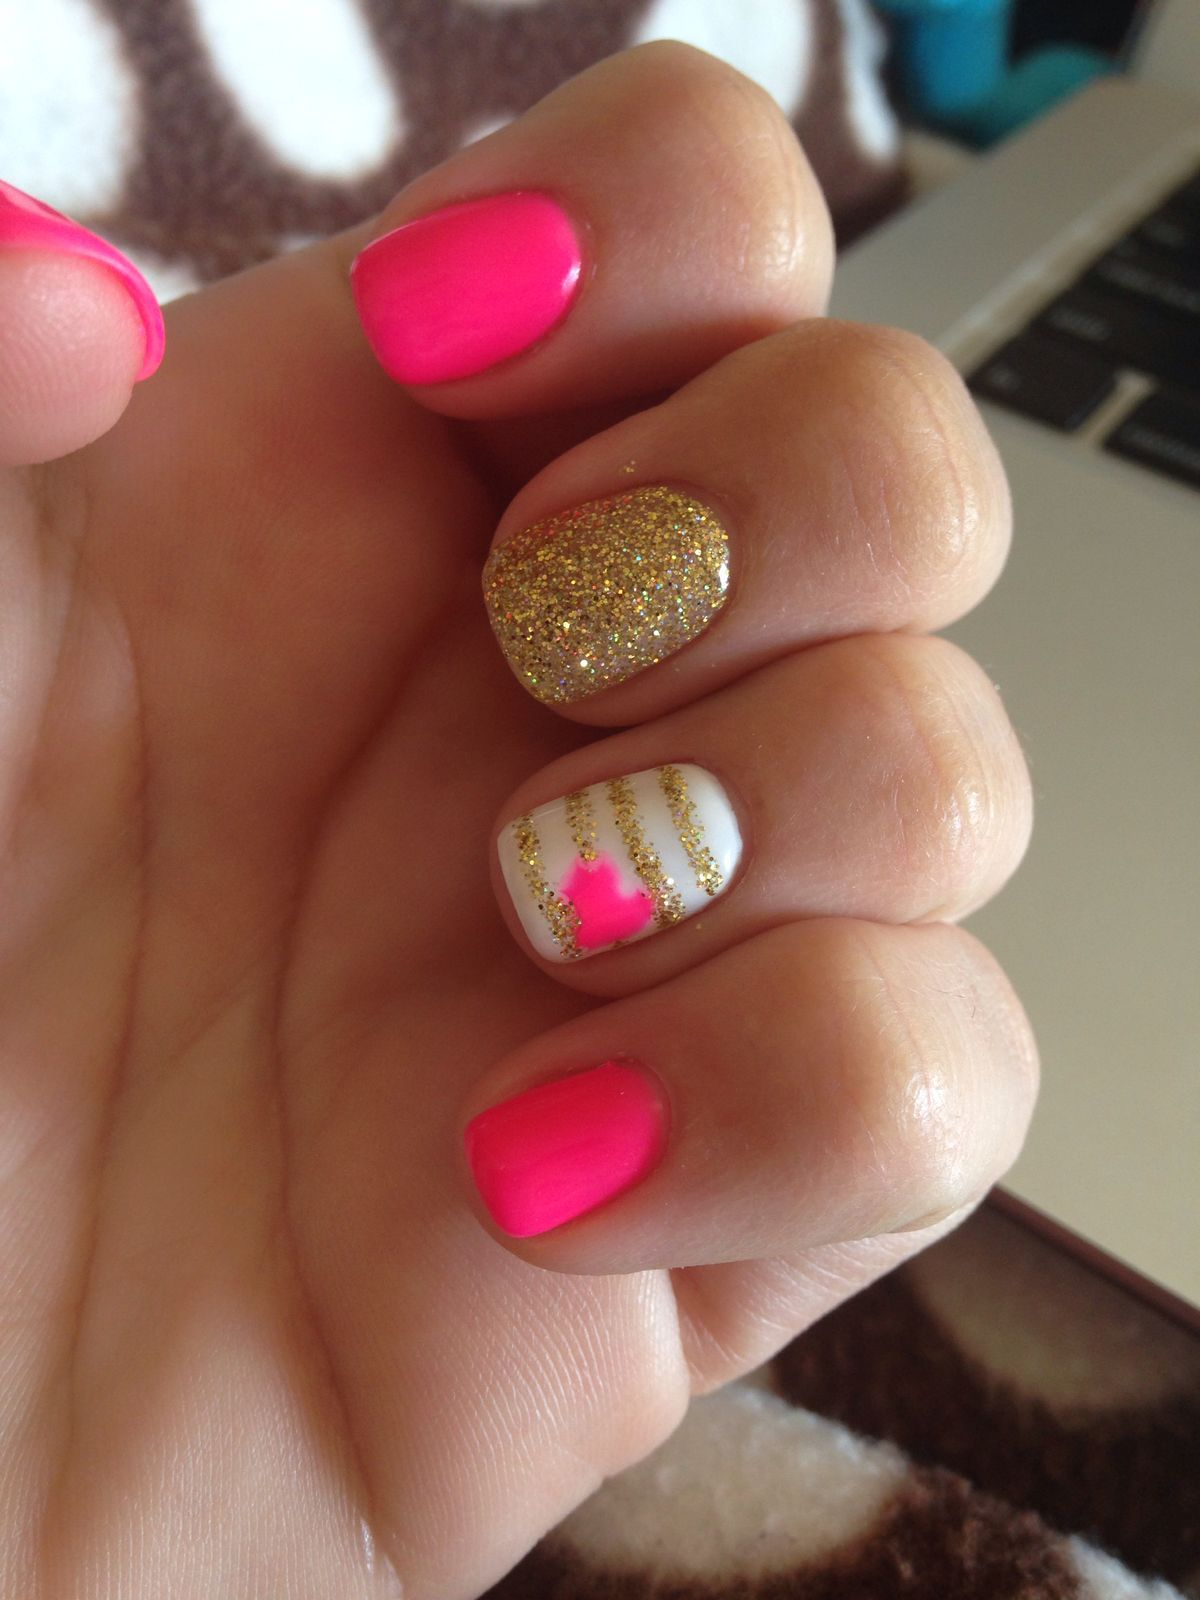 24 fancy nail art designs that you'll love looking at all day long